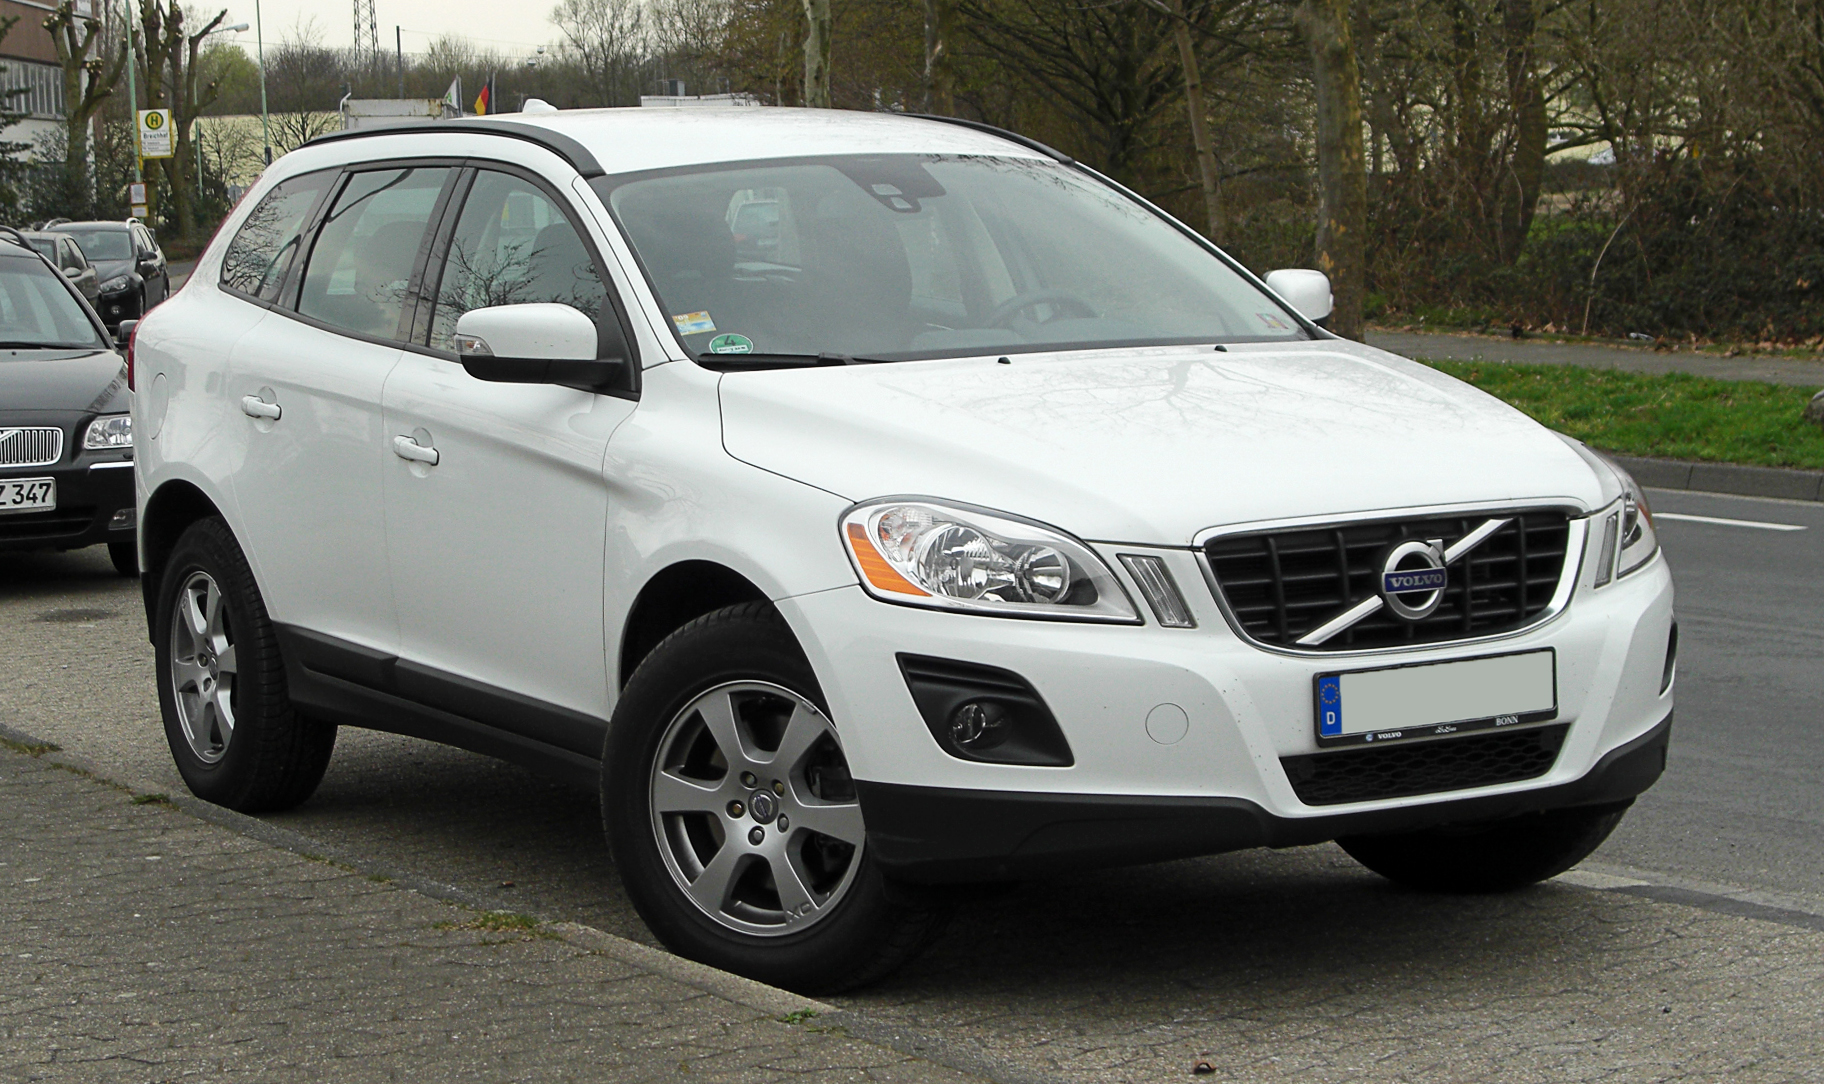 photo of Oscar Pistorius Volvo XC60 - car